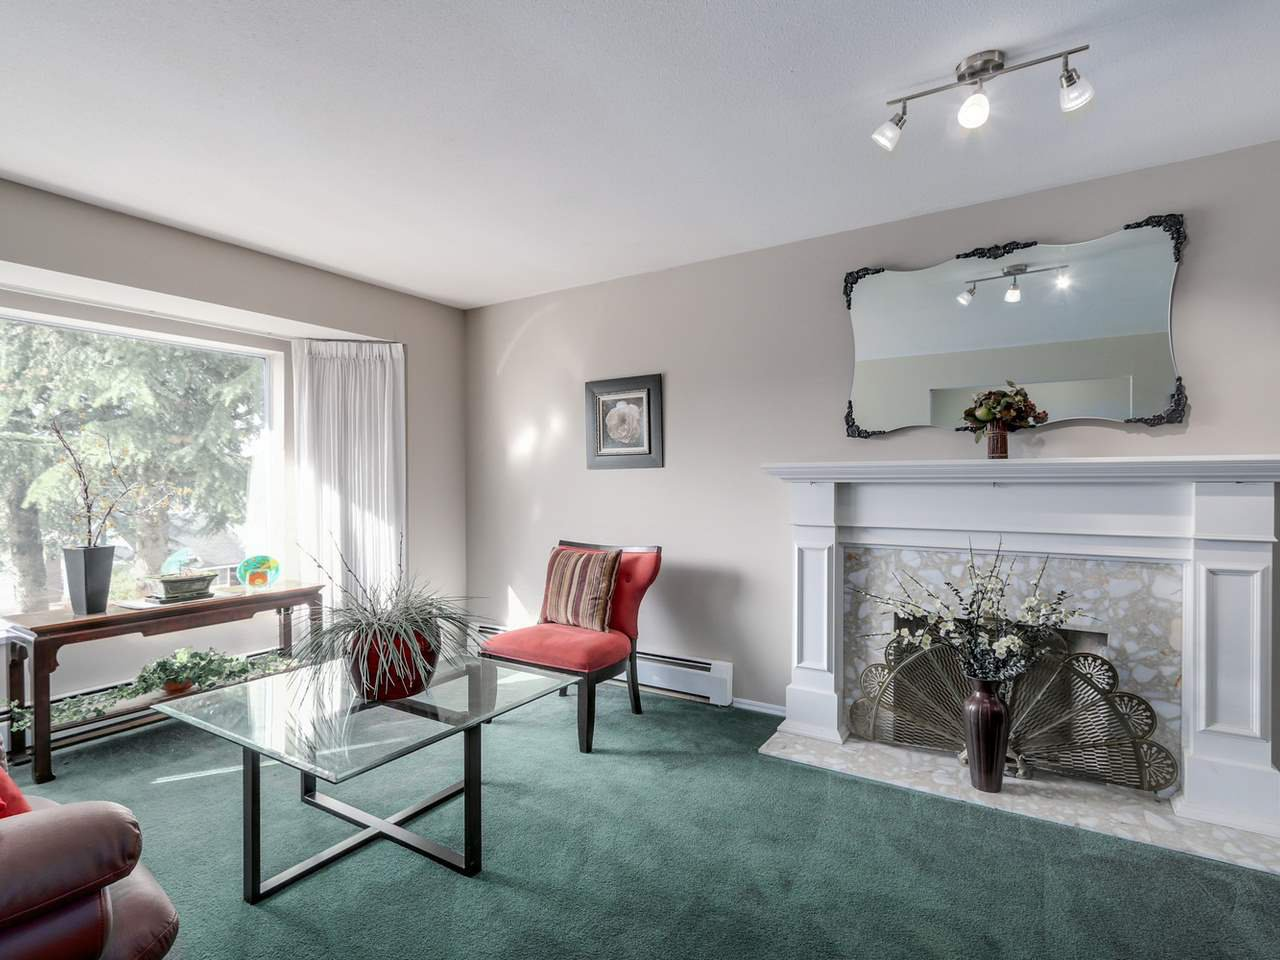 """Photo 6: Photos: 2559 BLUEBELL Avenue in Coquitlam: Summitt View House for sale in """"SUMMITT VIEW"""" : MLS®# R2064204"""